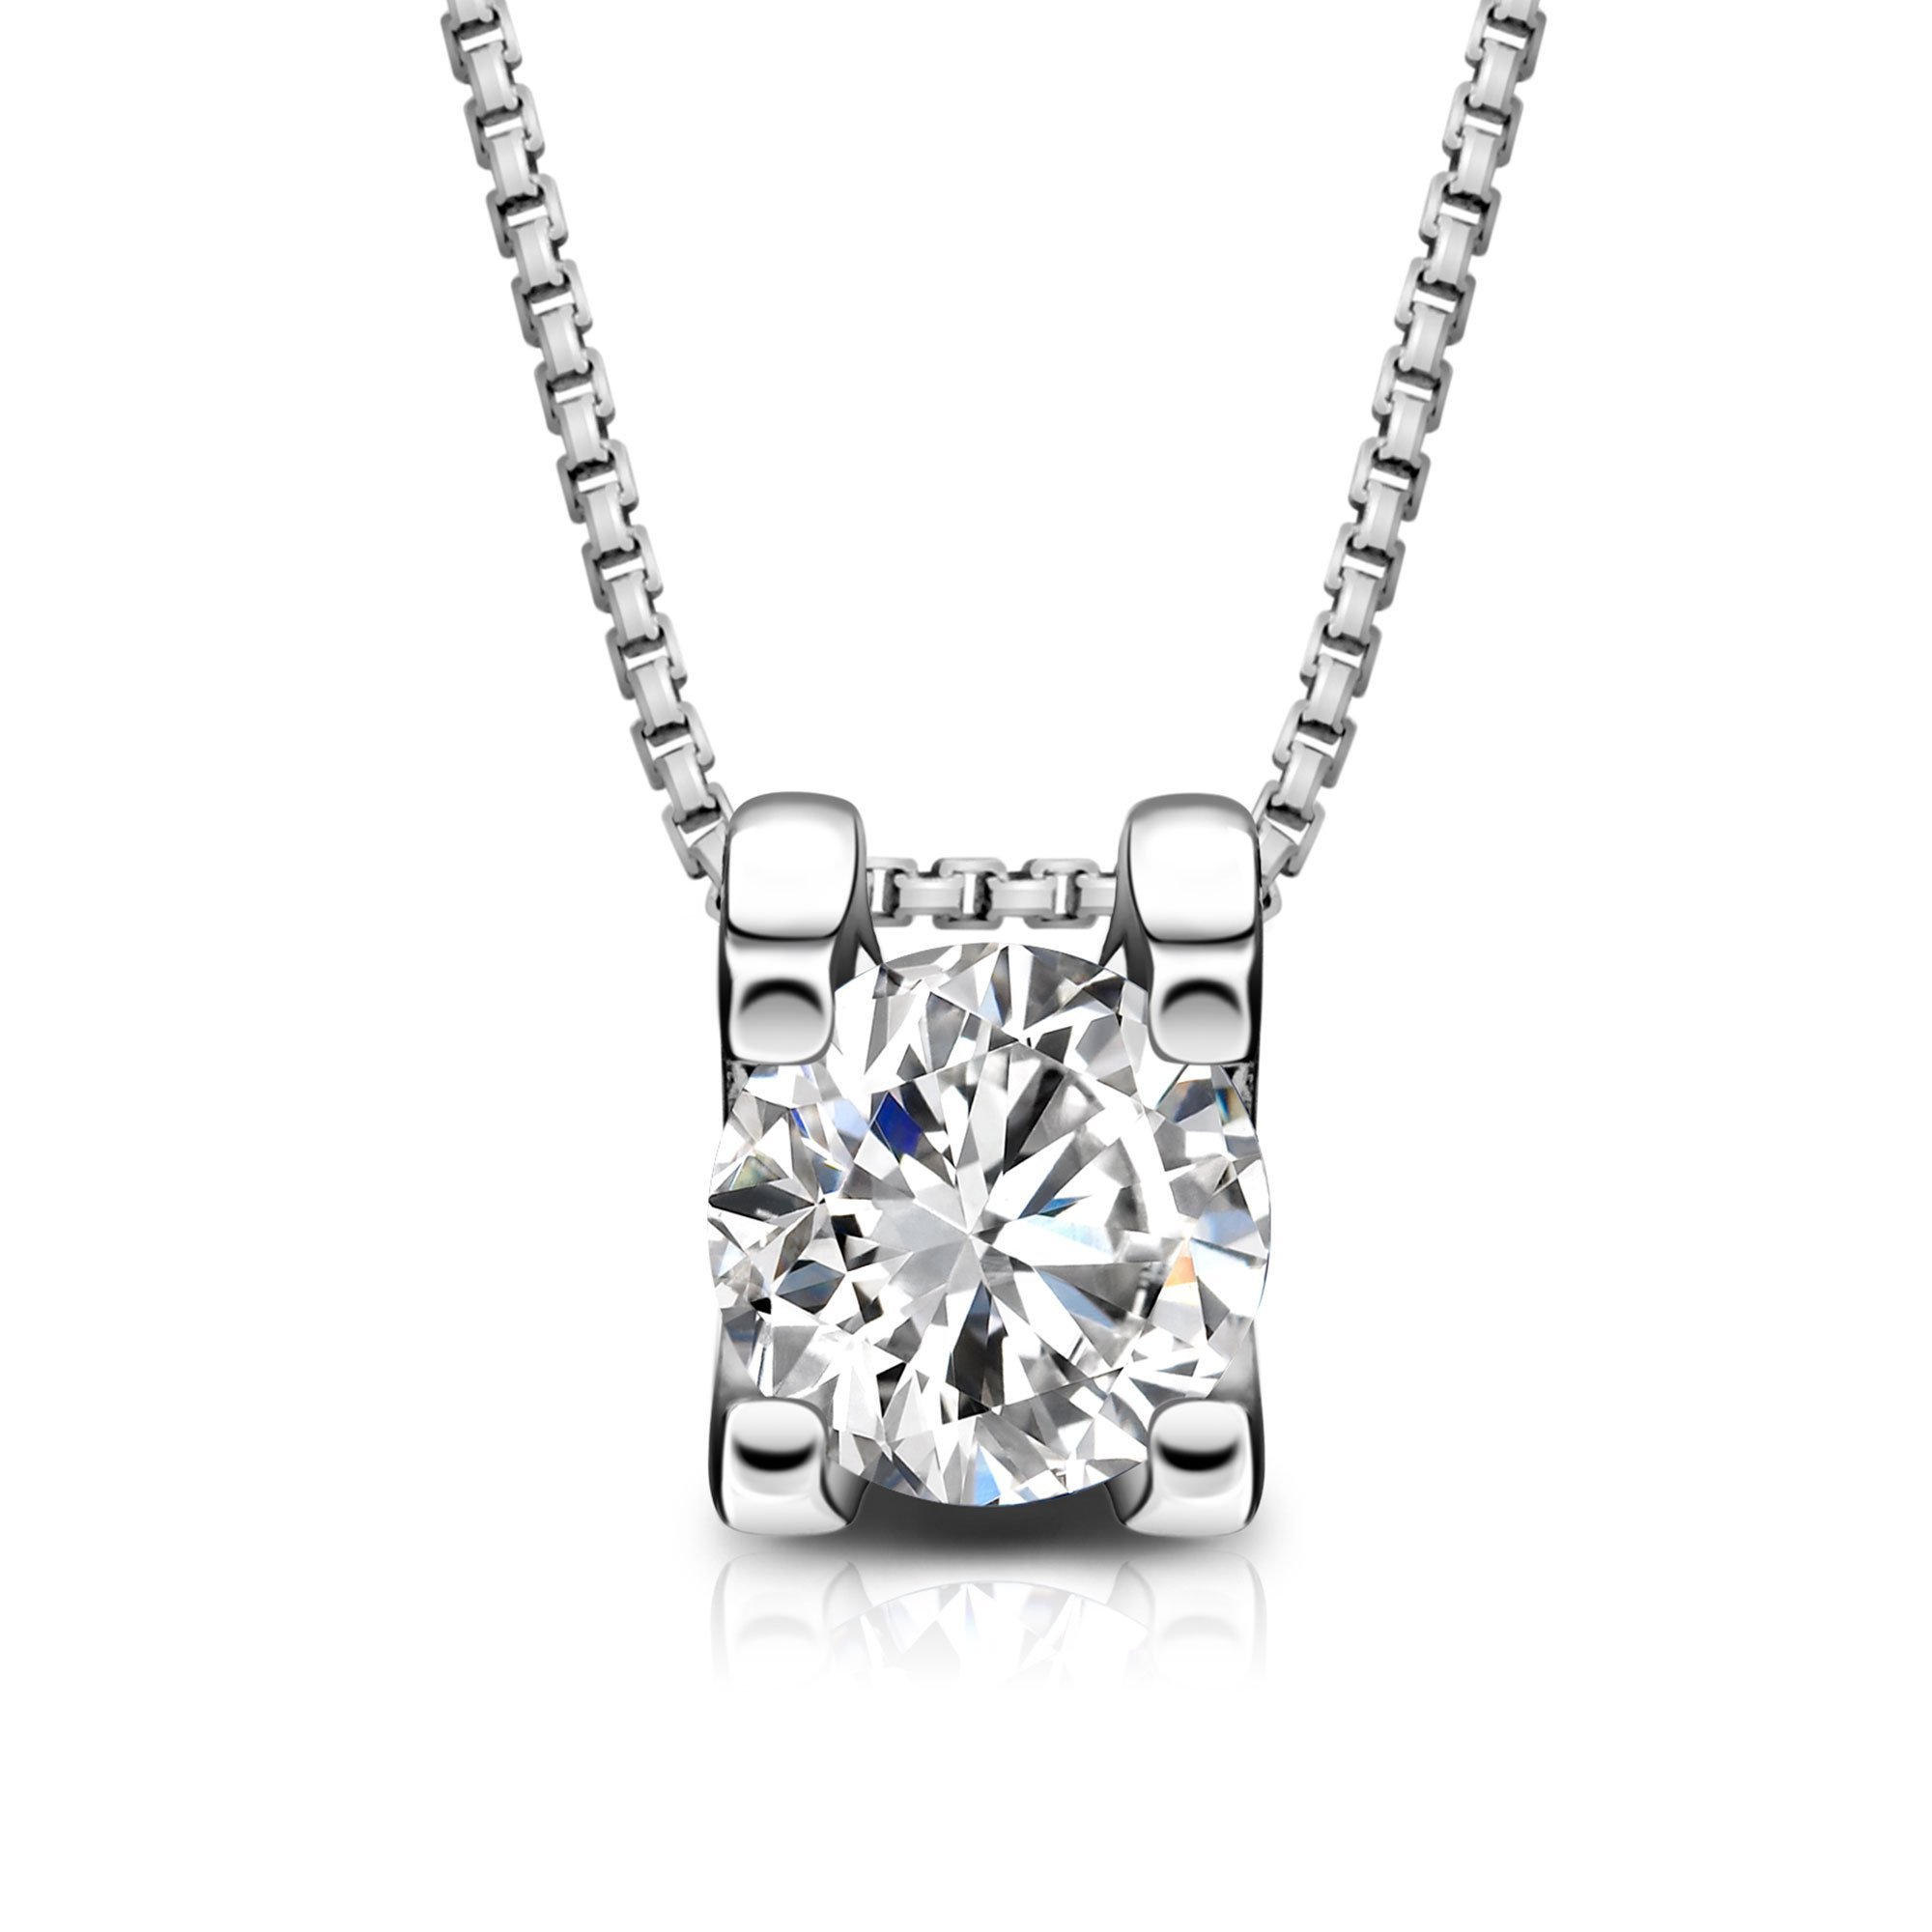 T400 Jewelers 925 Sterling Silver Box Chain Pendant Necklace Made with Swarovski Zirconia Square Shape Love Gift